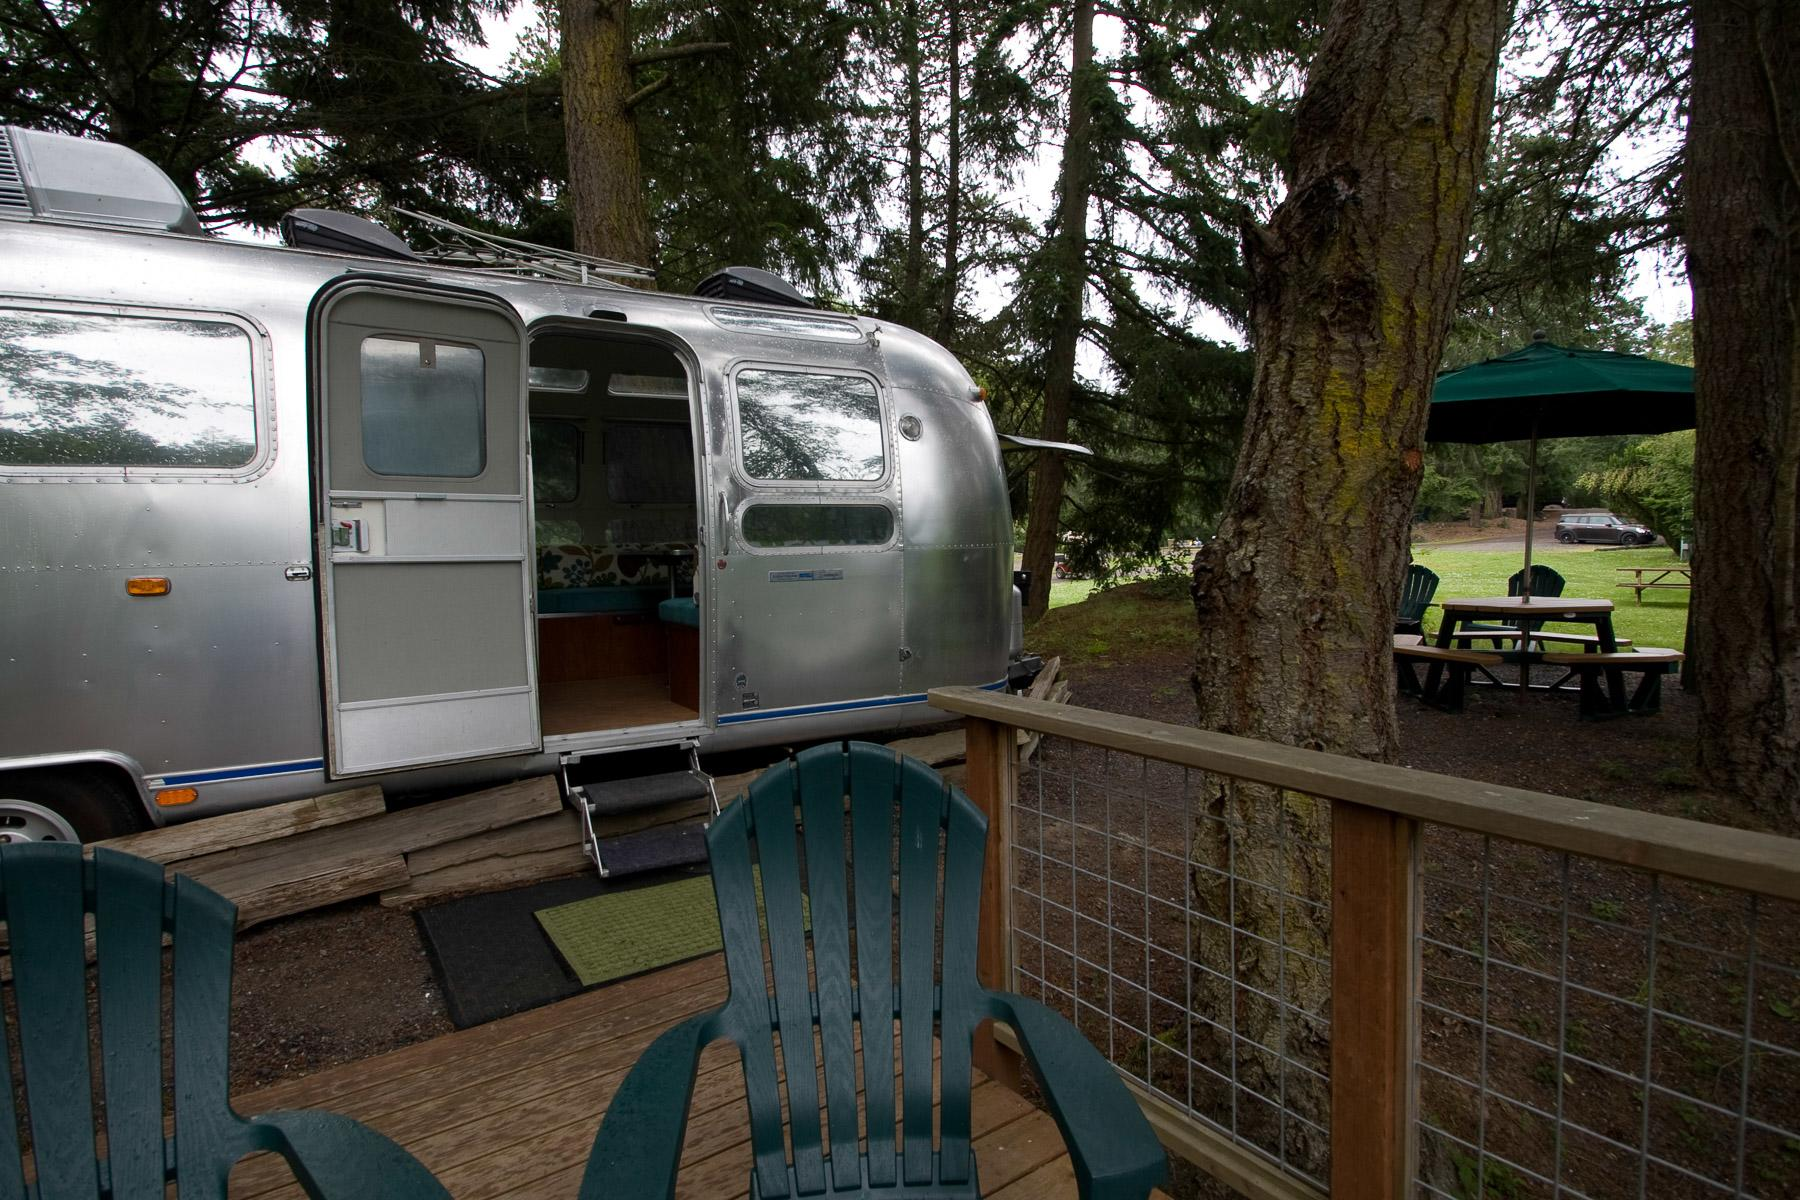 Airstream Caravan Vintage vintage trailer and airstream rentals for a glamping vacation